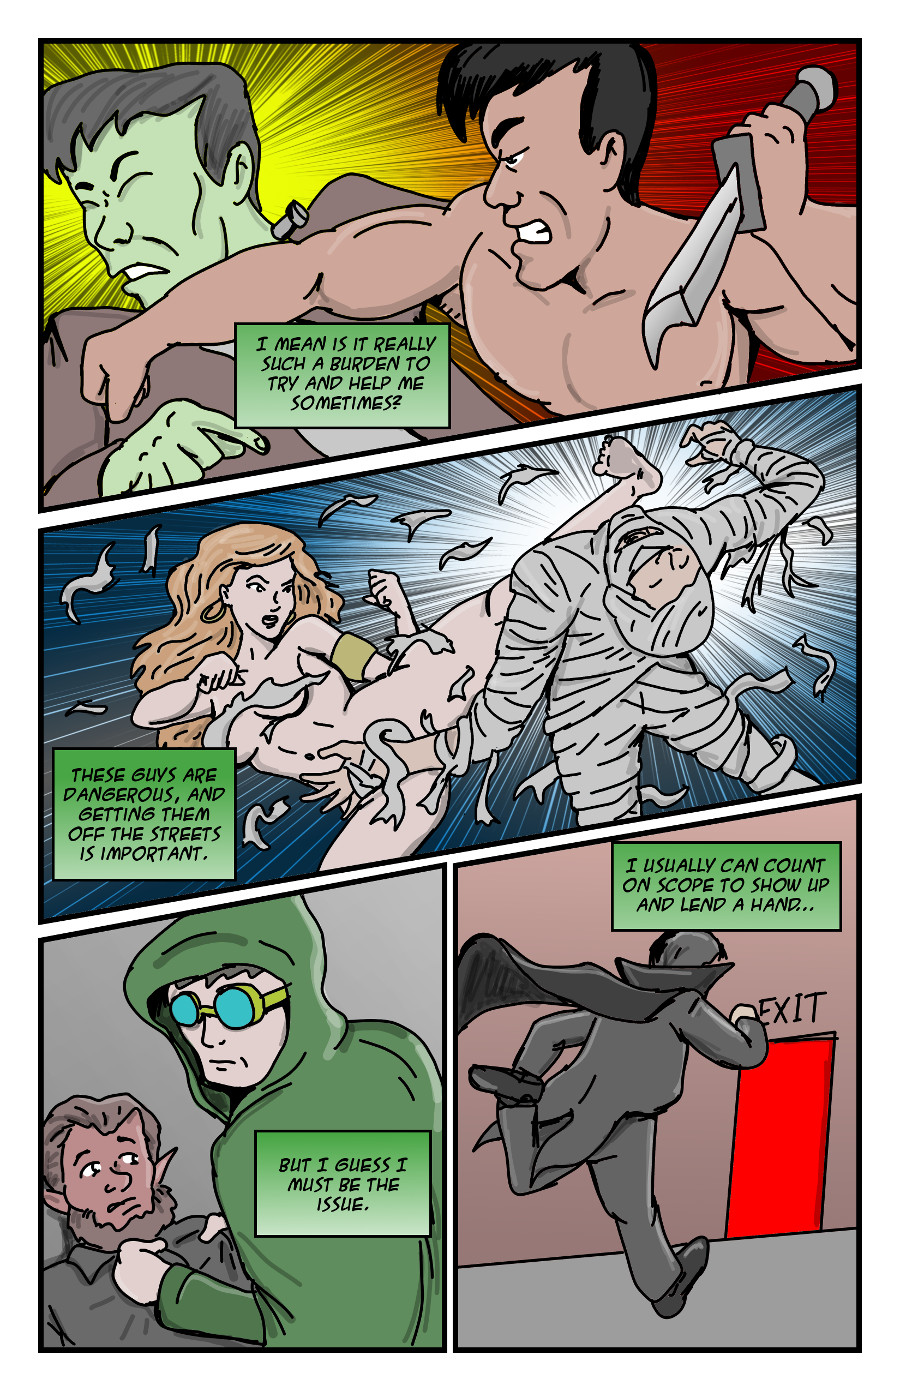 The Green Dove by Jay042 Page 3